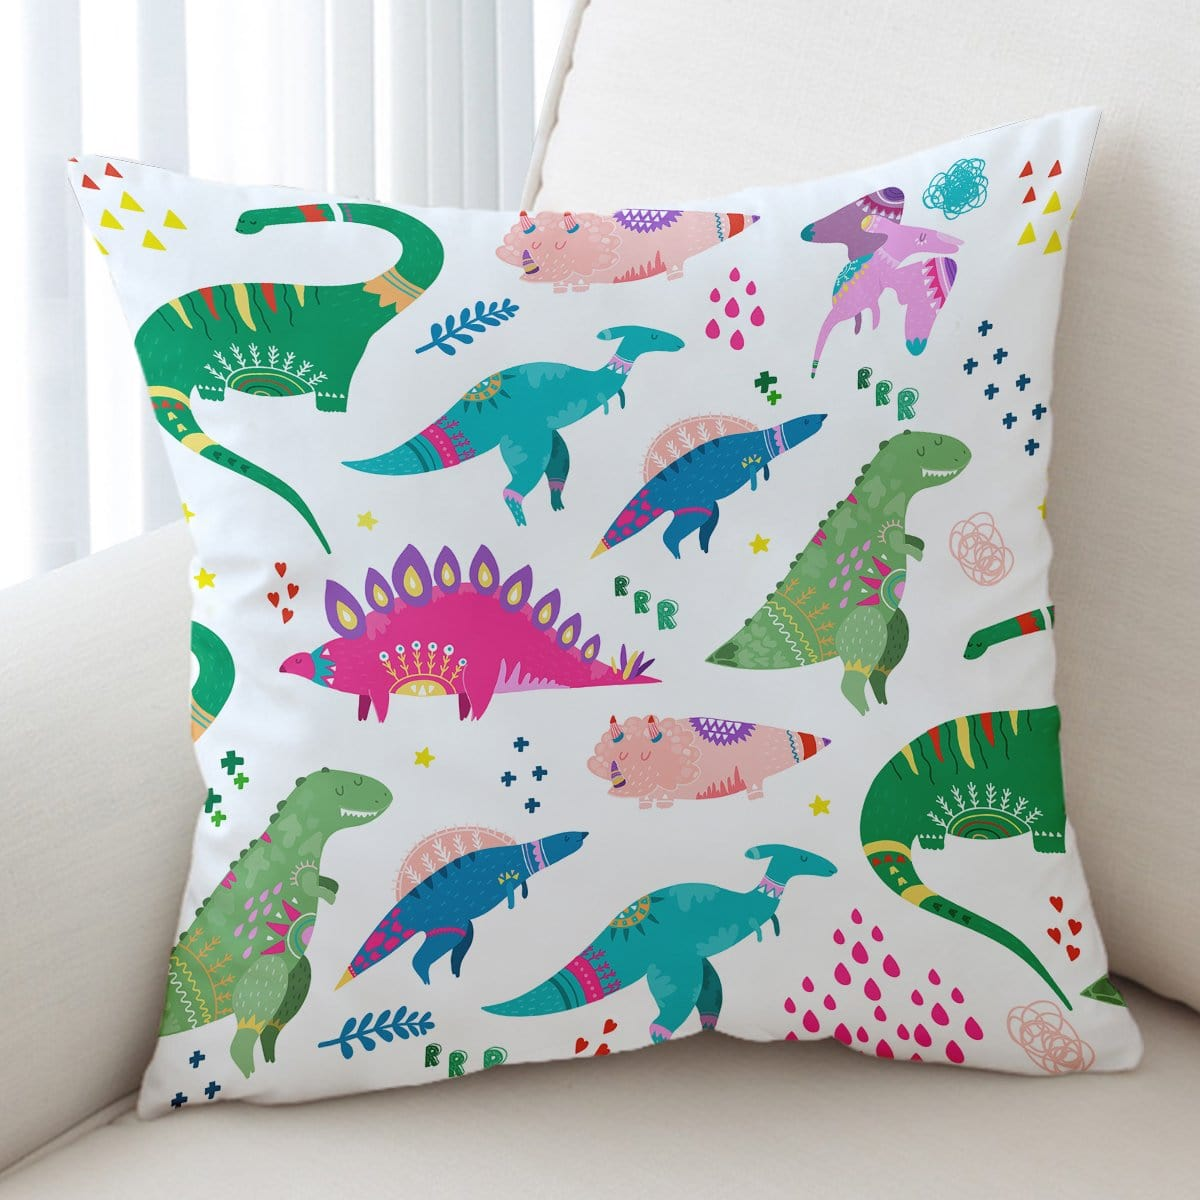 Dinosaur Wonderland Cushion Cover-Dinosaur Wonderland-Little Squiffy